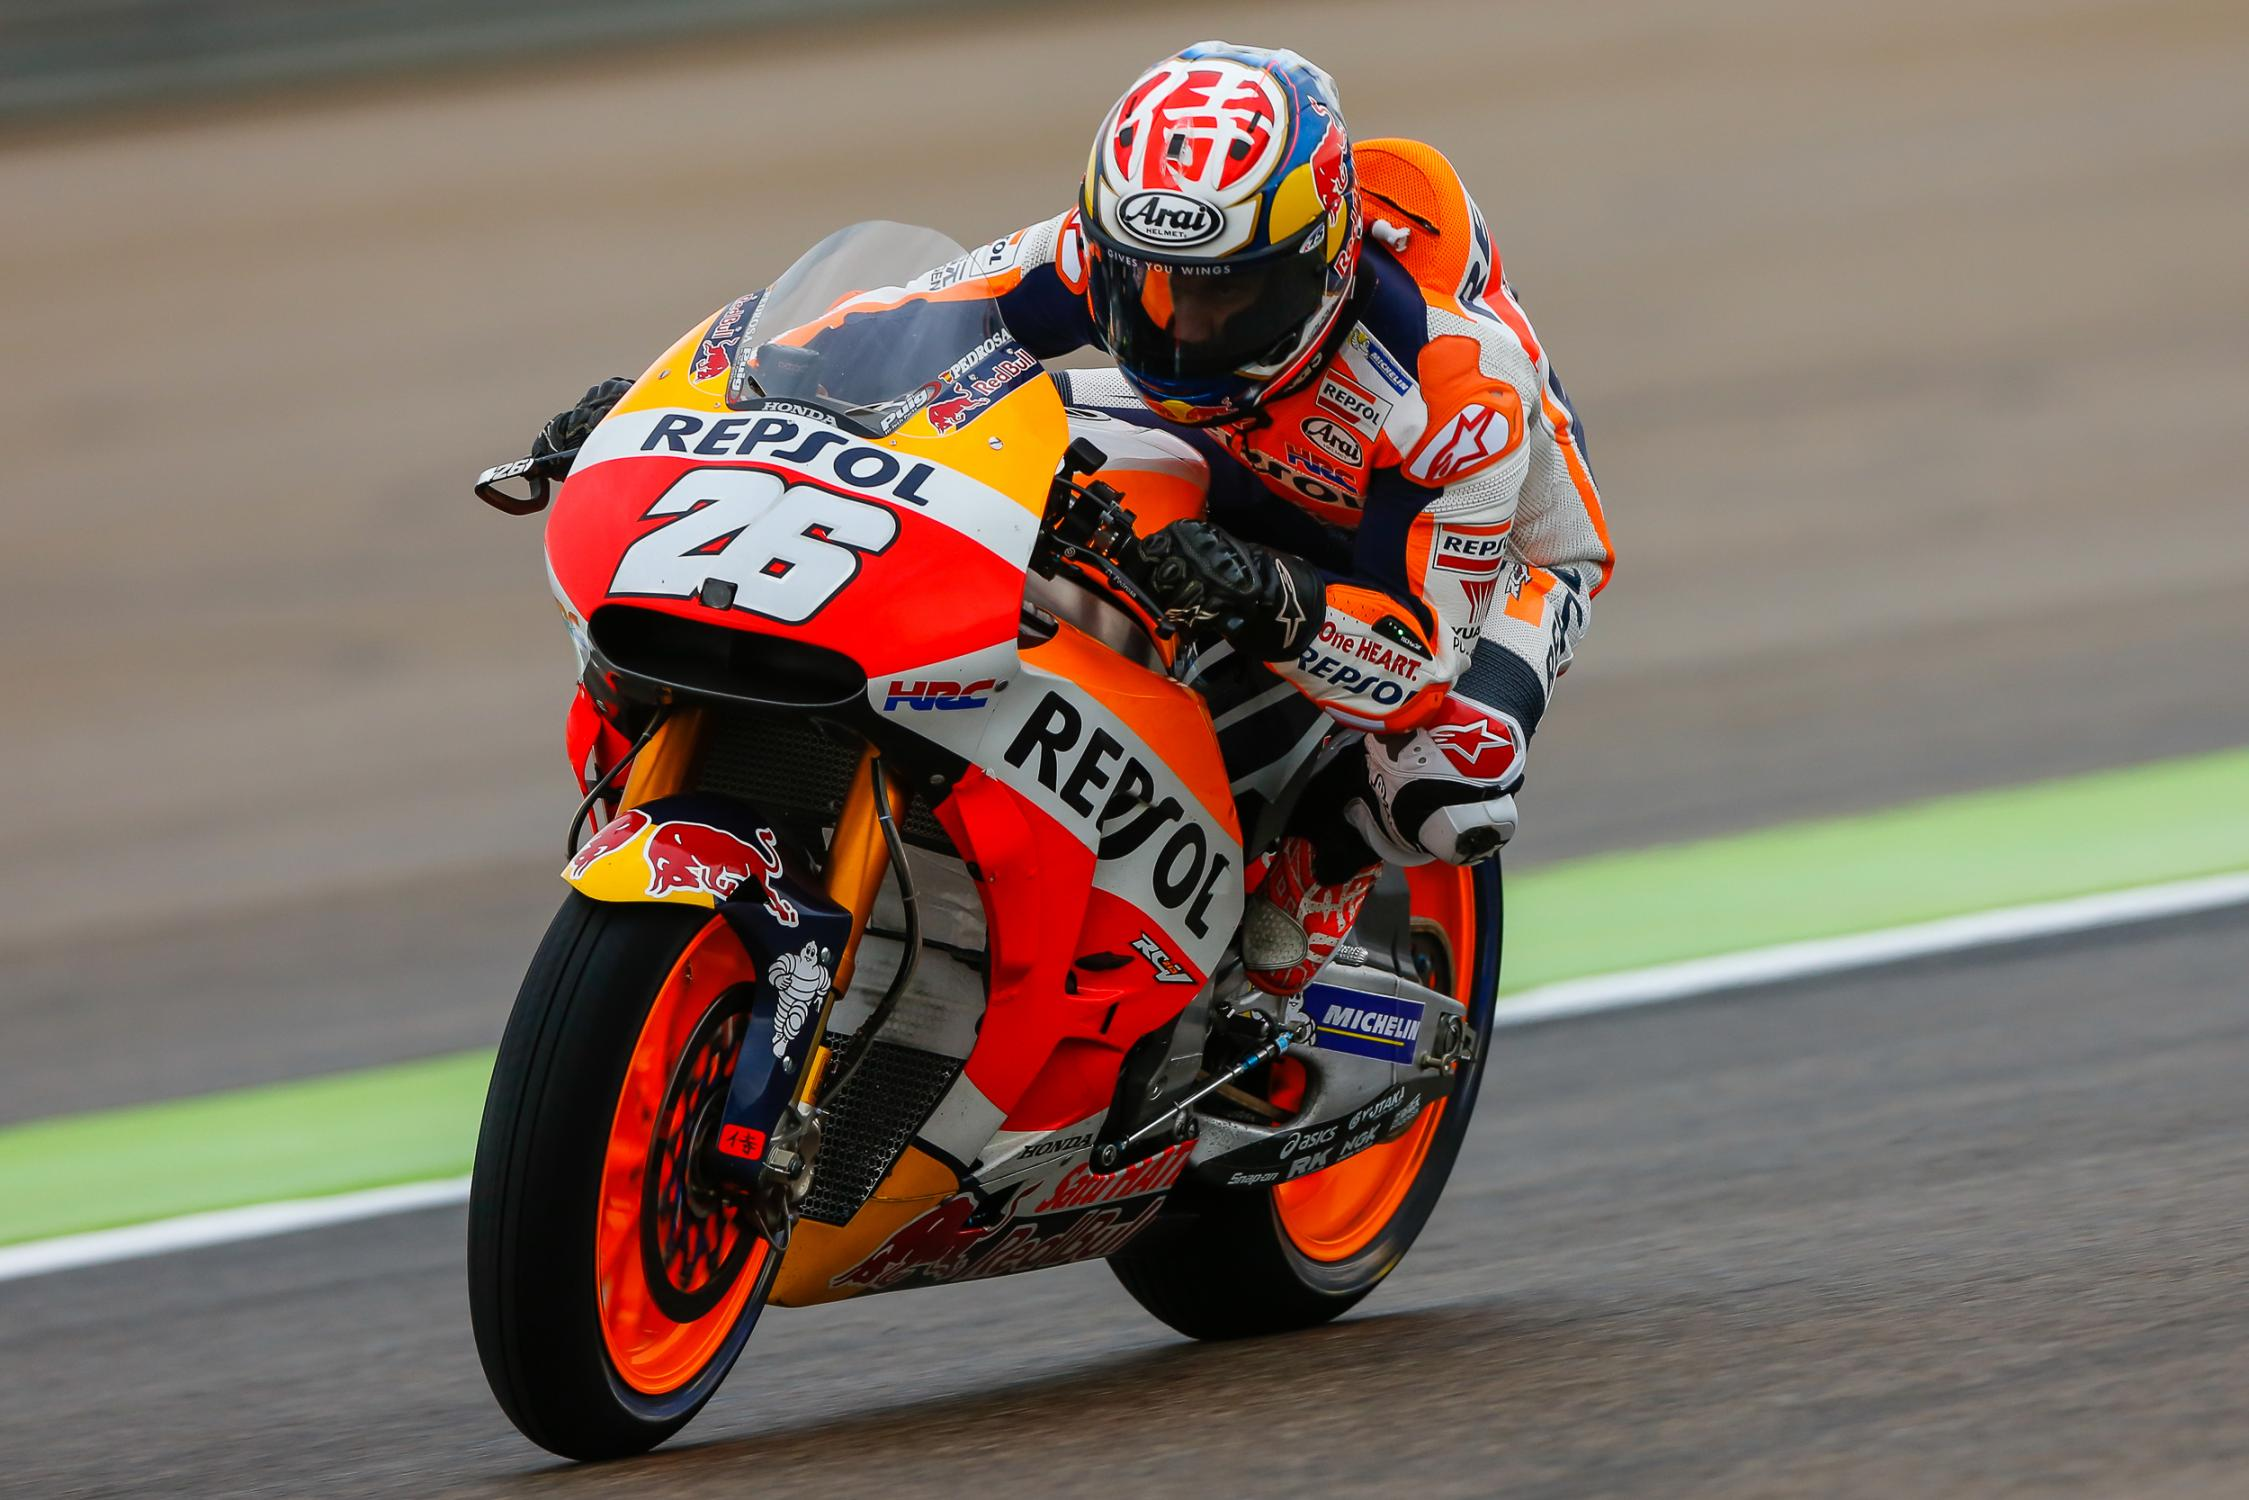 26-dani-pedrosa-esp_gp_4976.gallery_full_top_fullscreen.jpg